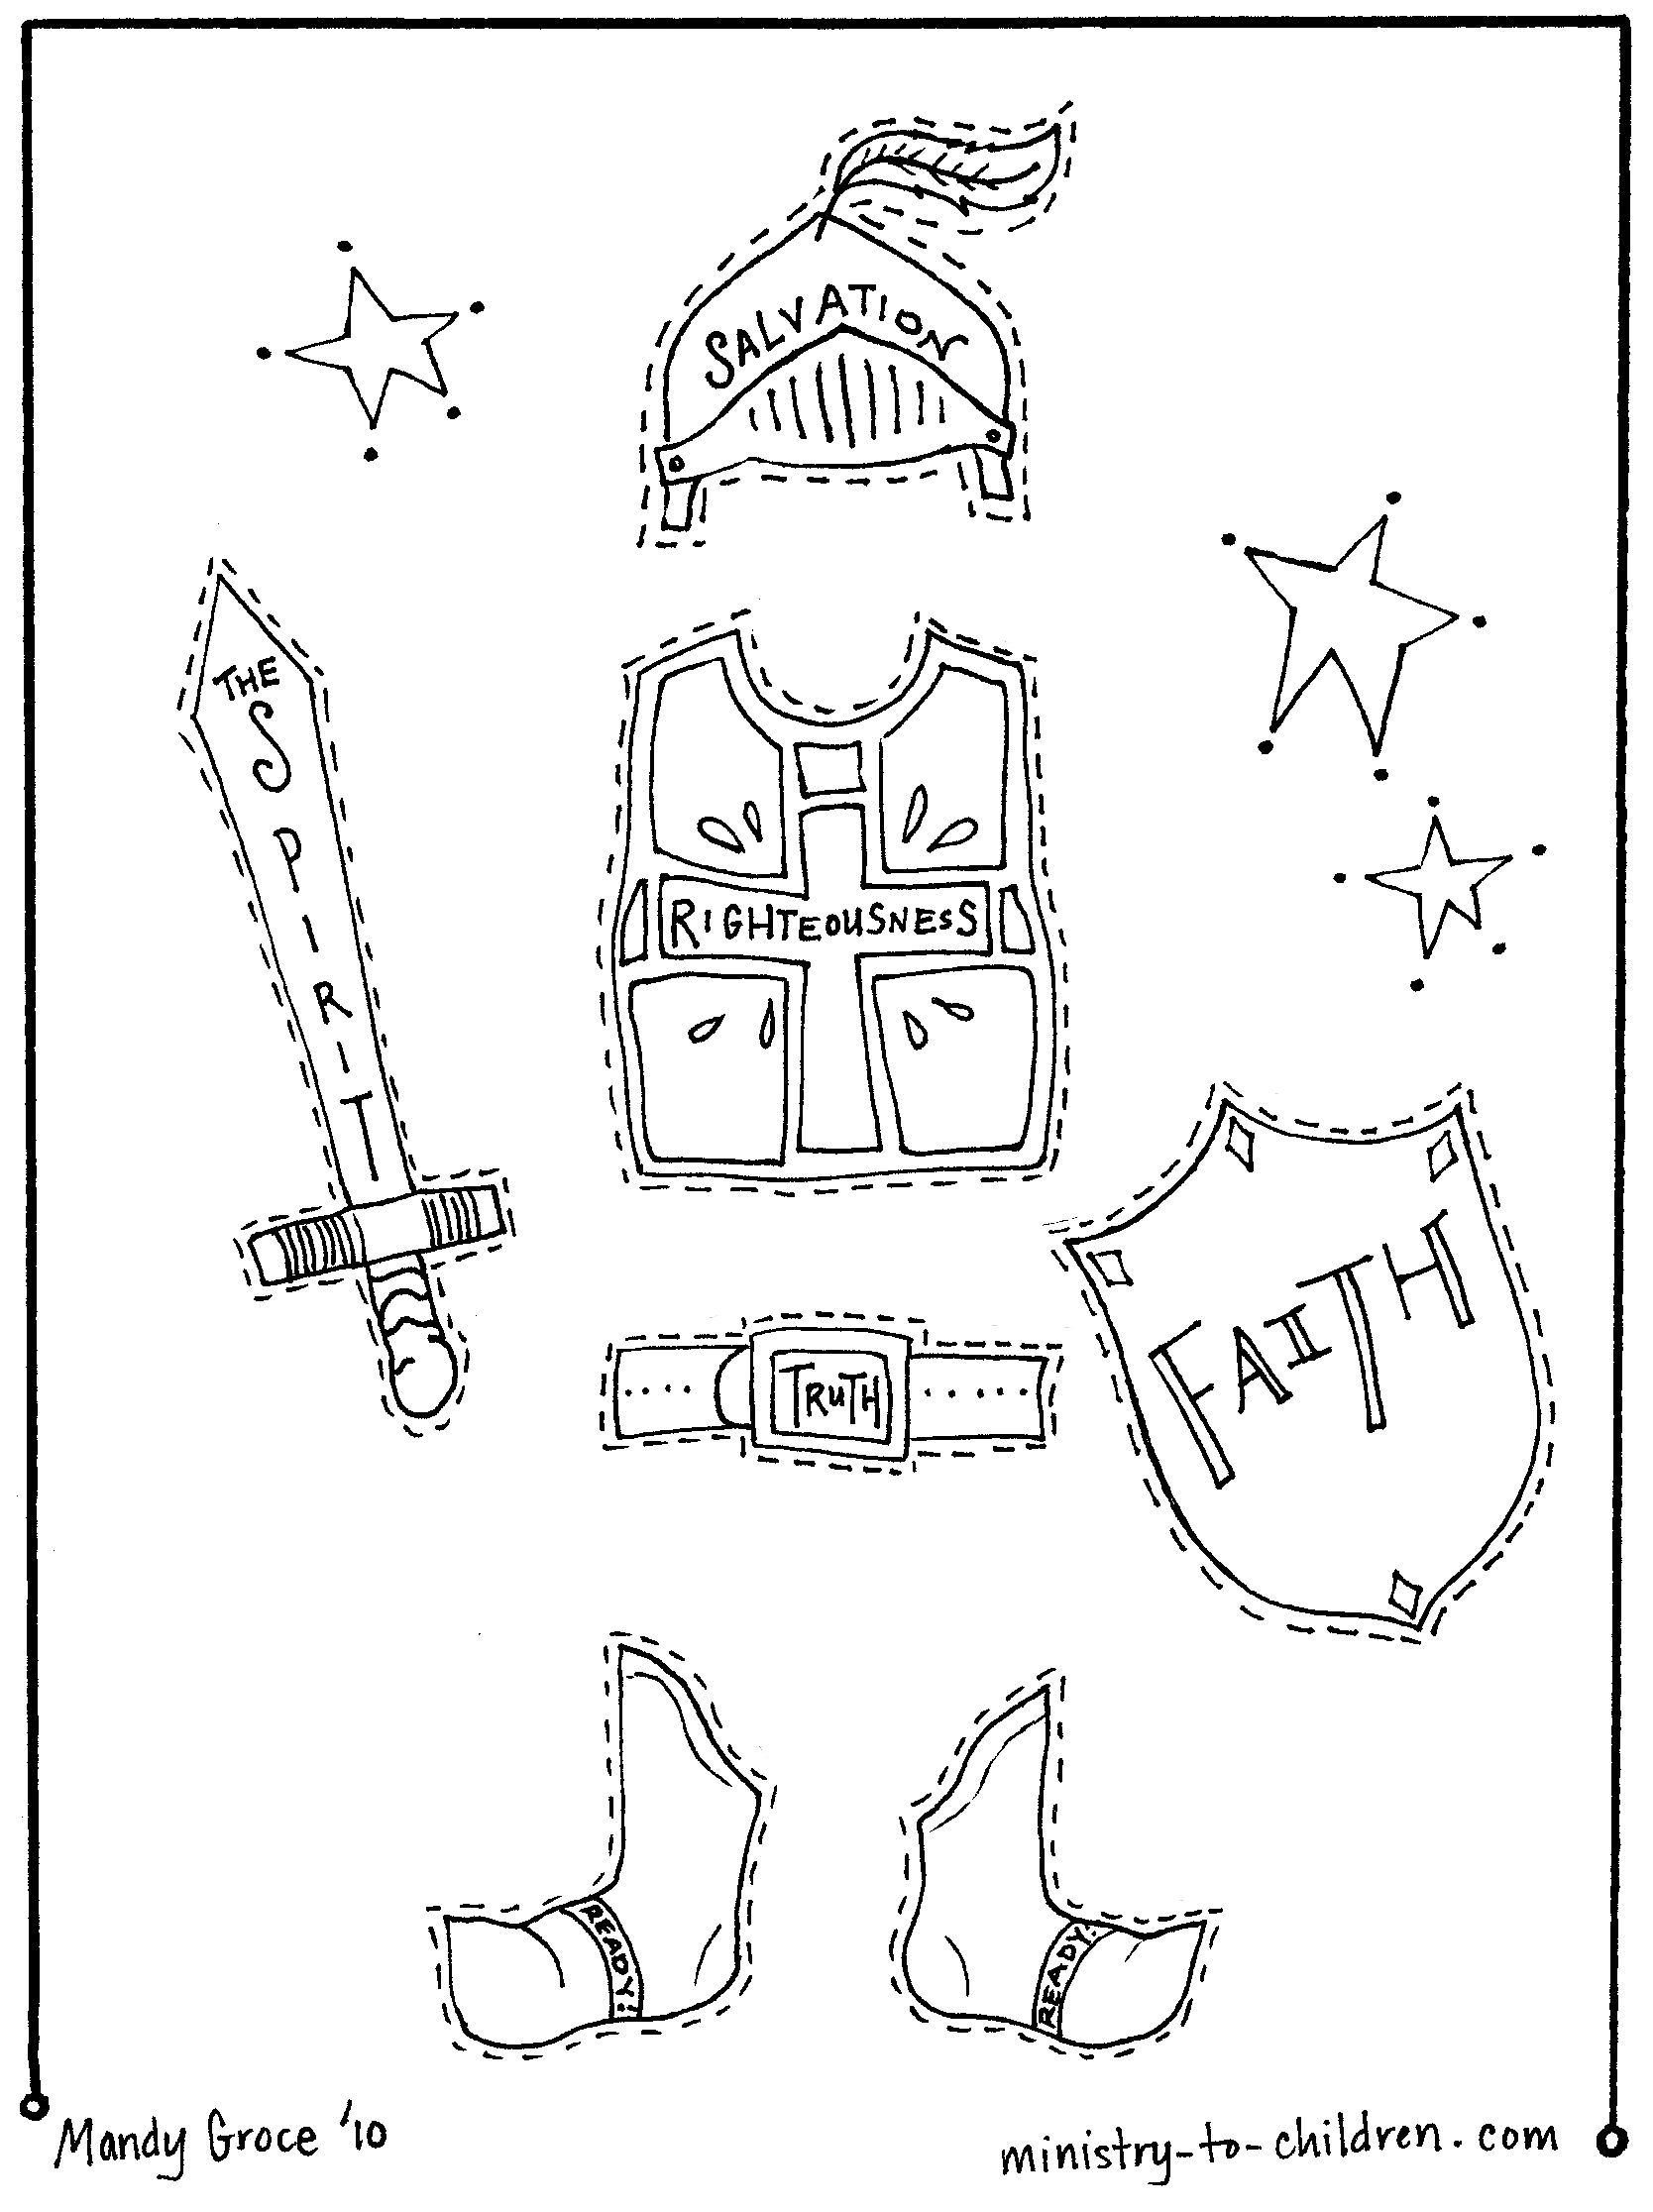 armor for kids- draw body, cut out, cover with each piece